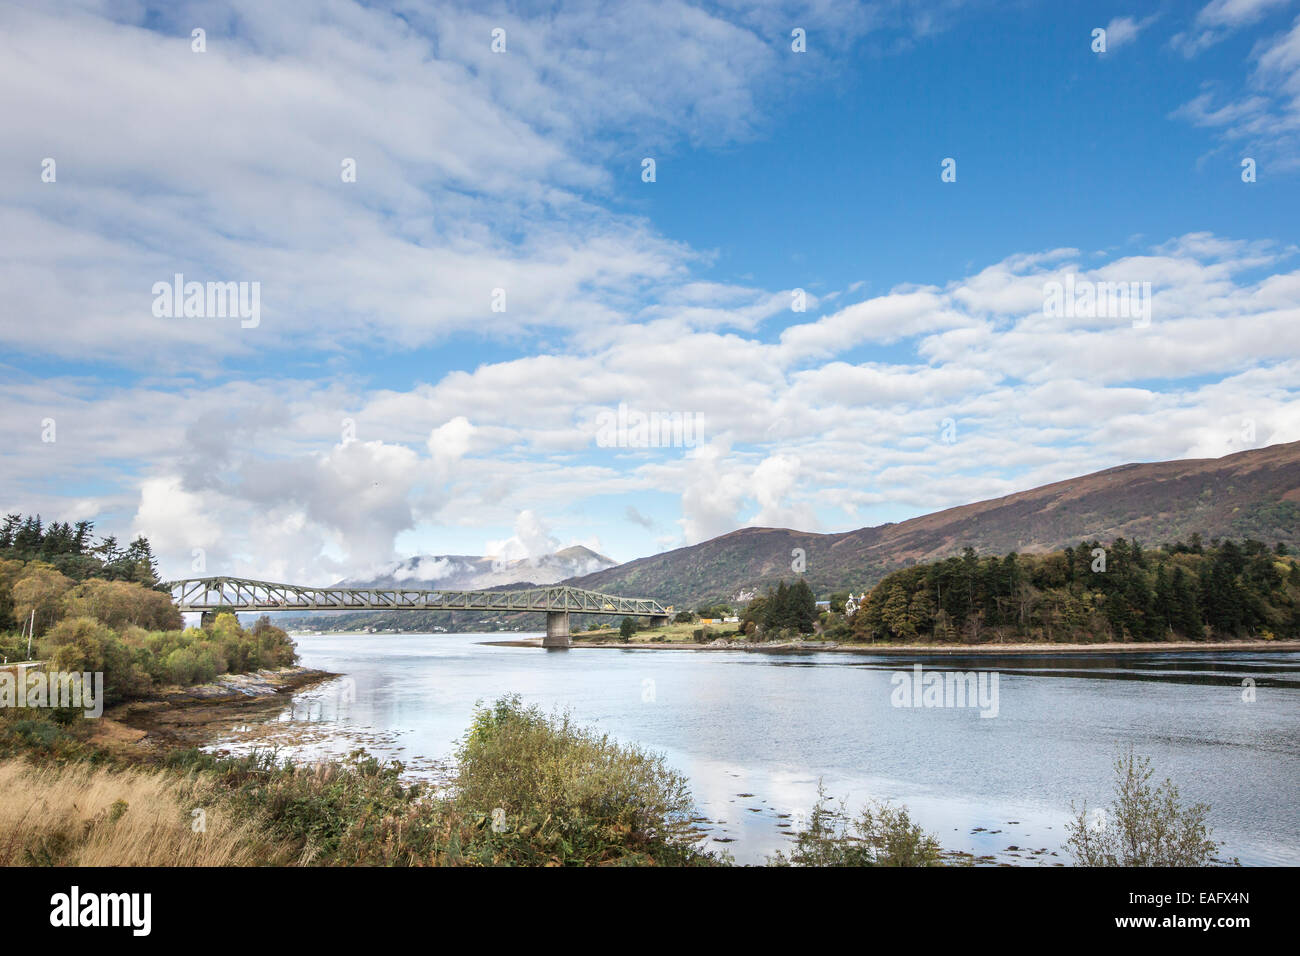 Ballachulish bridge & Loch Leven in the Highlands of Scotland. - Stock Image